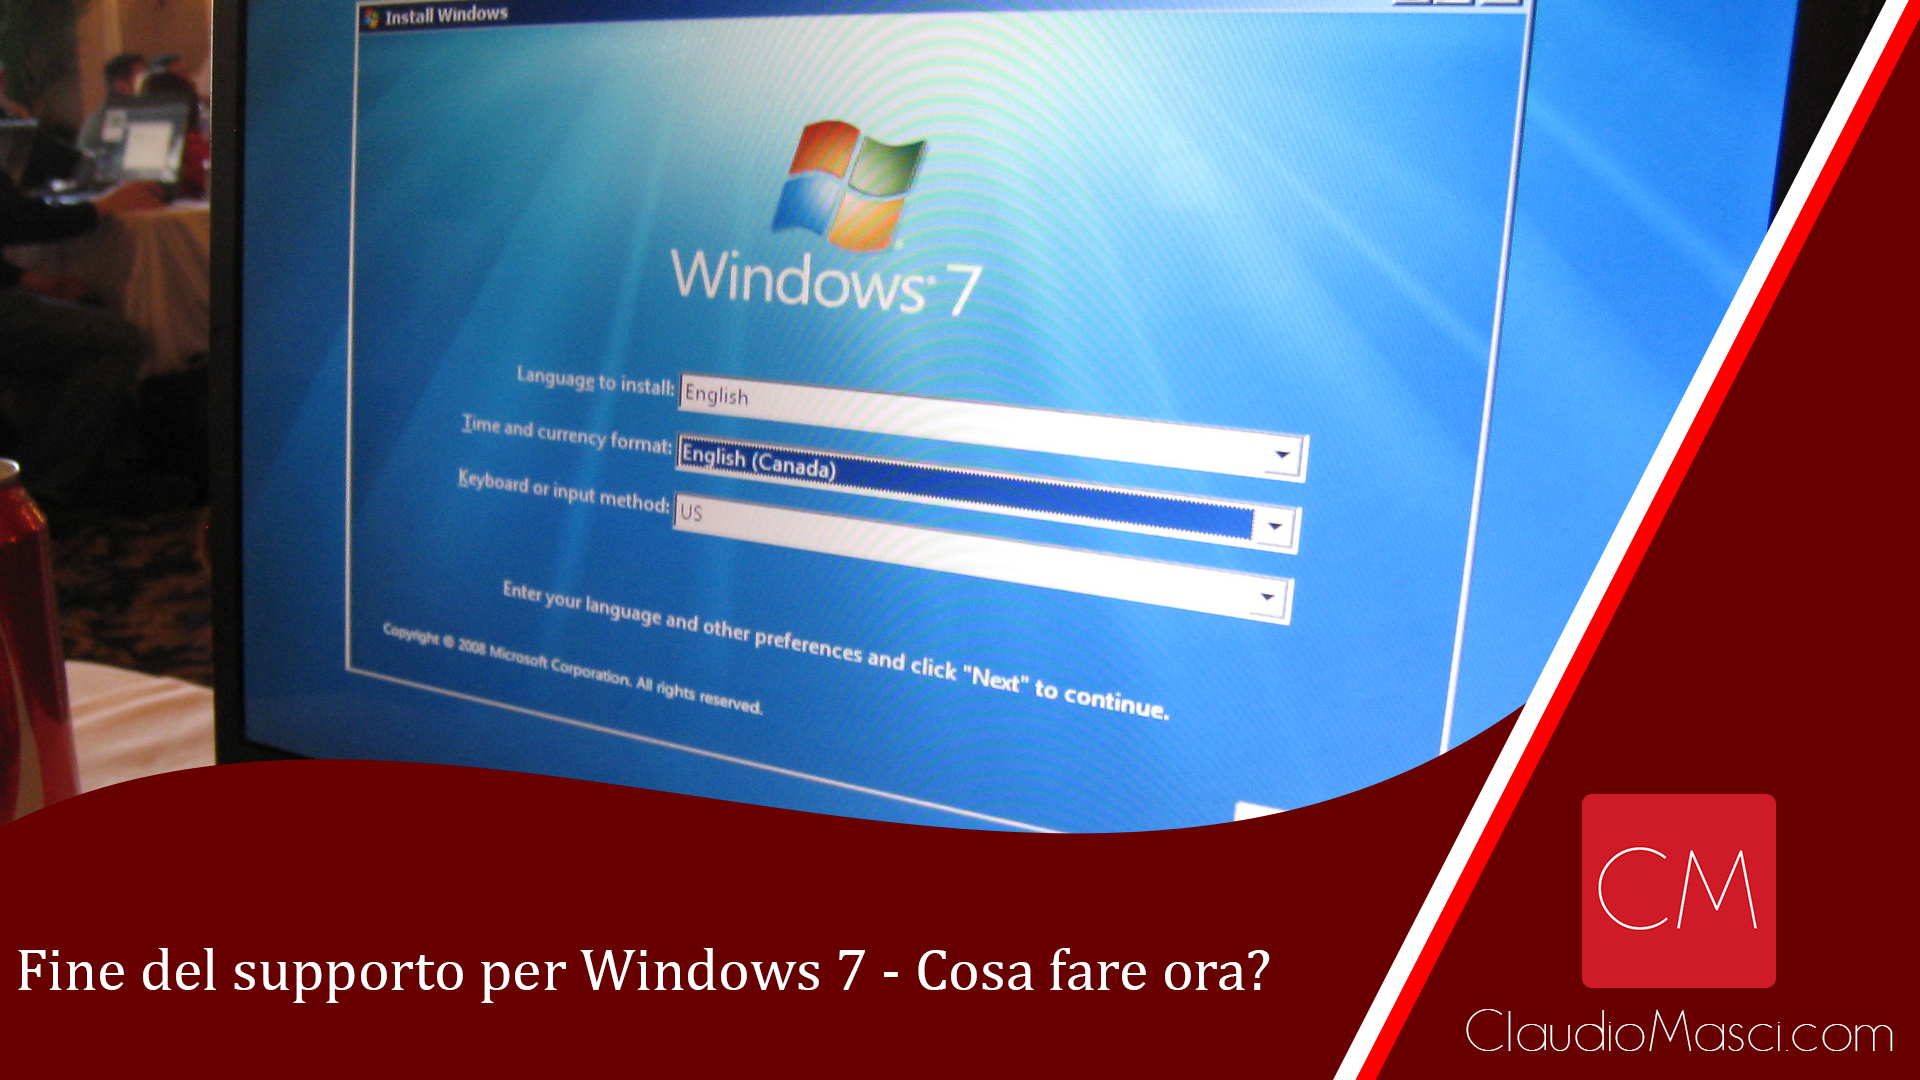 Fine del supporto per Windows 7 – Cosa fare ora?